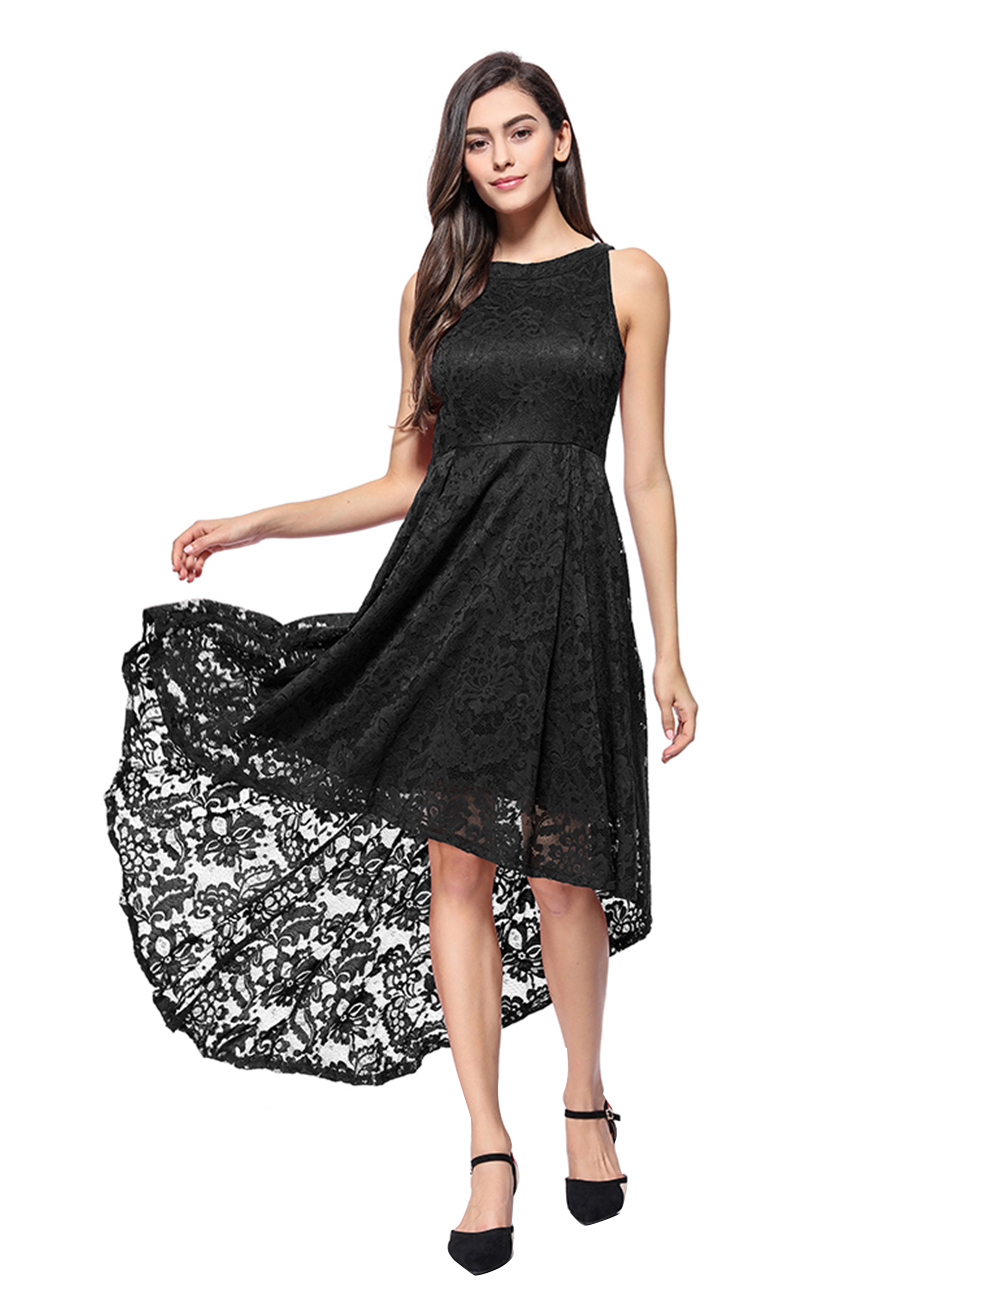 //cdn.affectcloud.com/feelingirldress/upload/imgs/2019-06-11/VZ190800-BK1/VZ190800-BK1.jpg